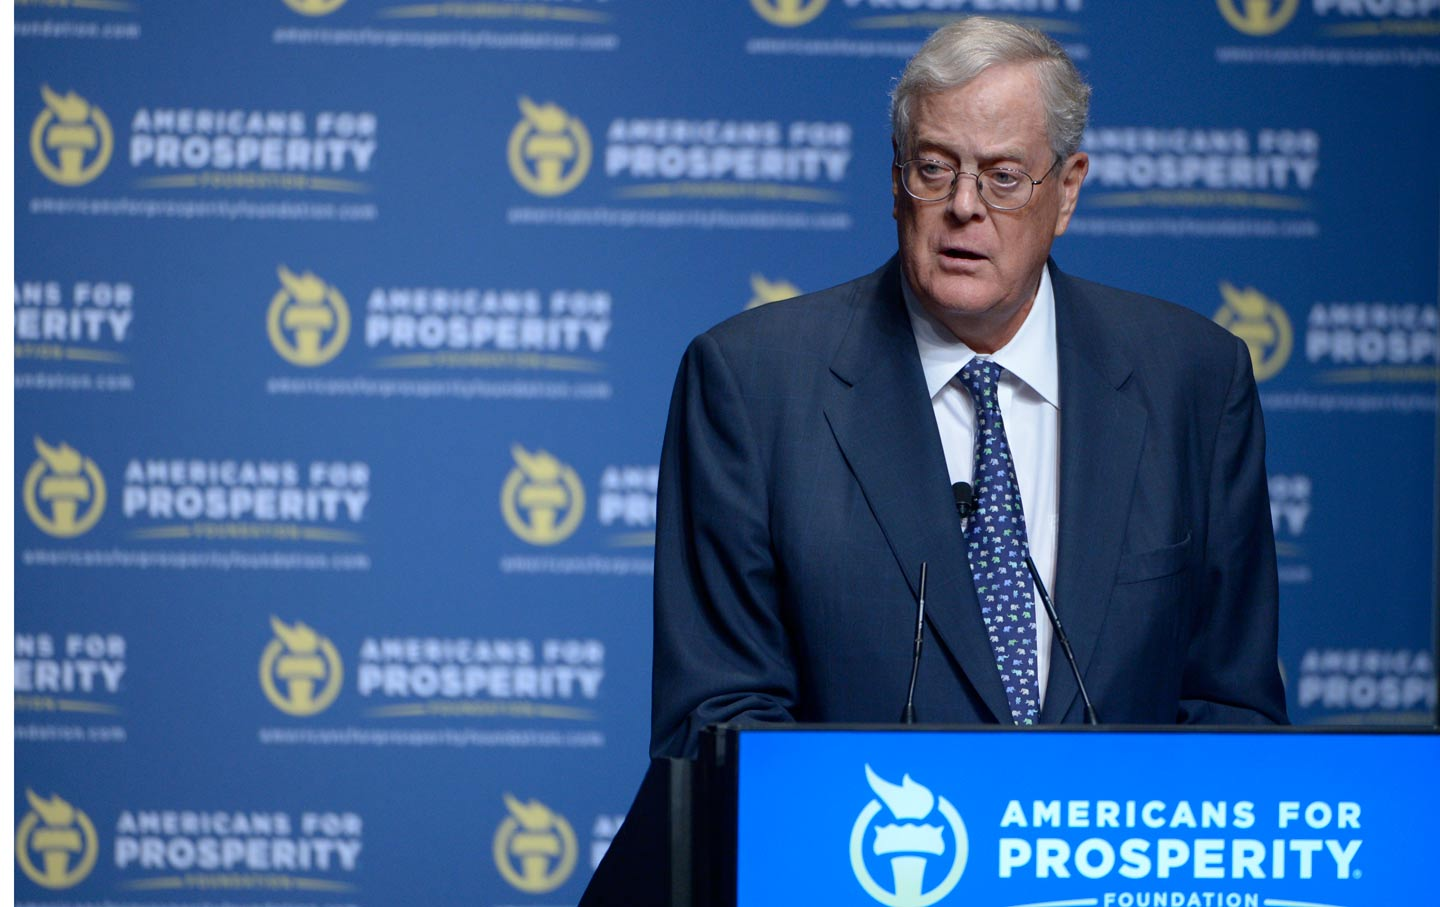 david_koch_prosperity_summit_ap_img